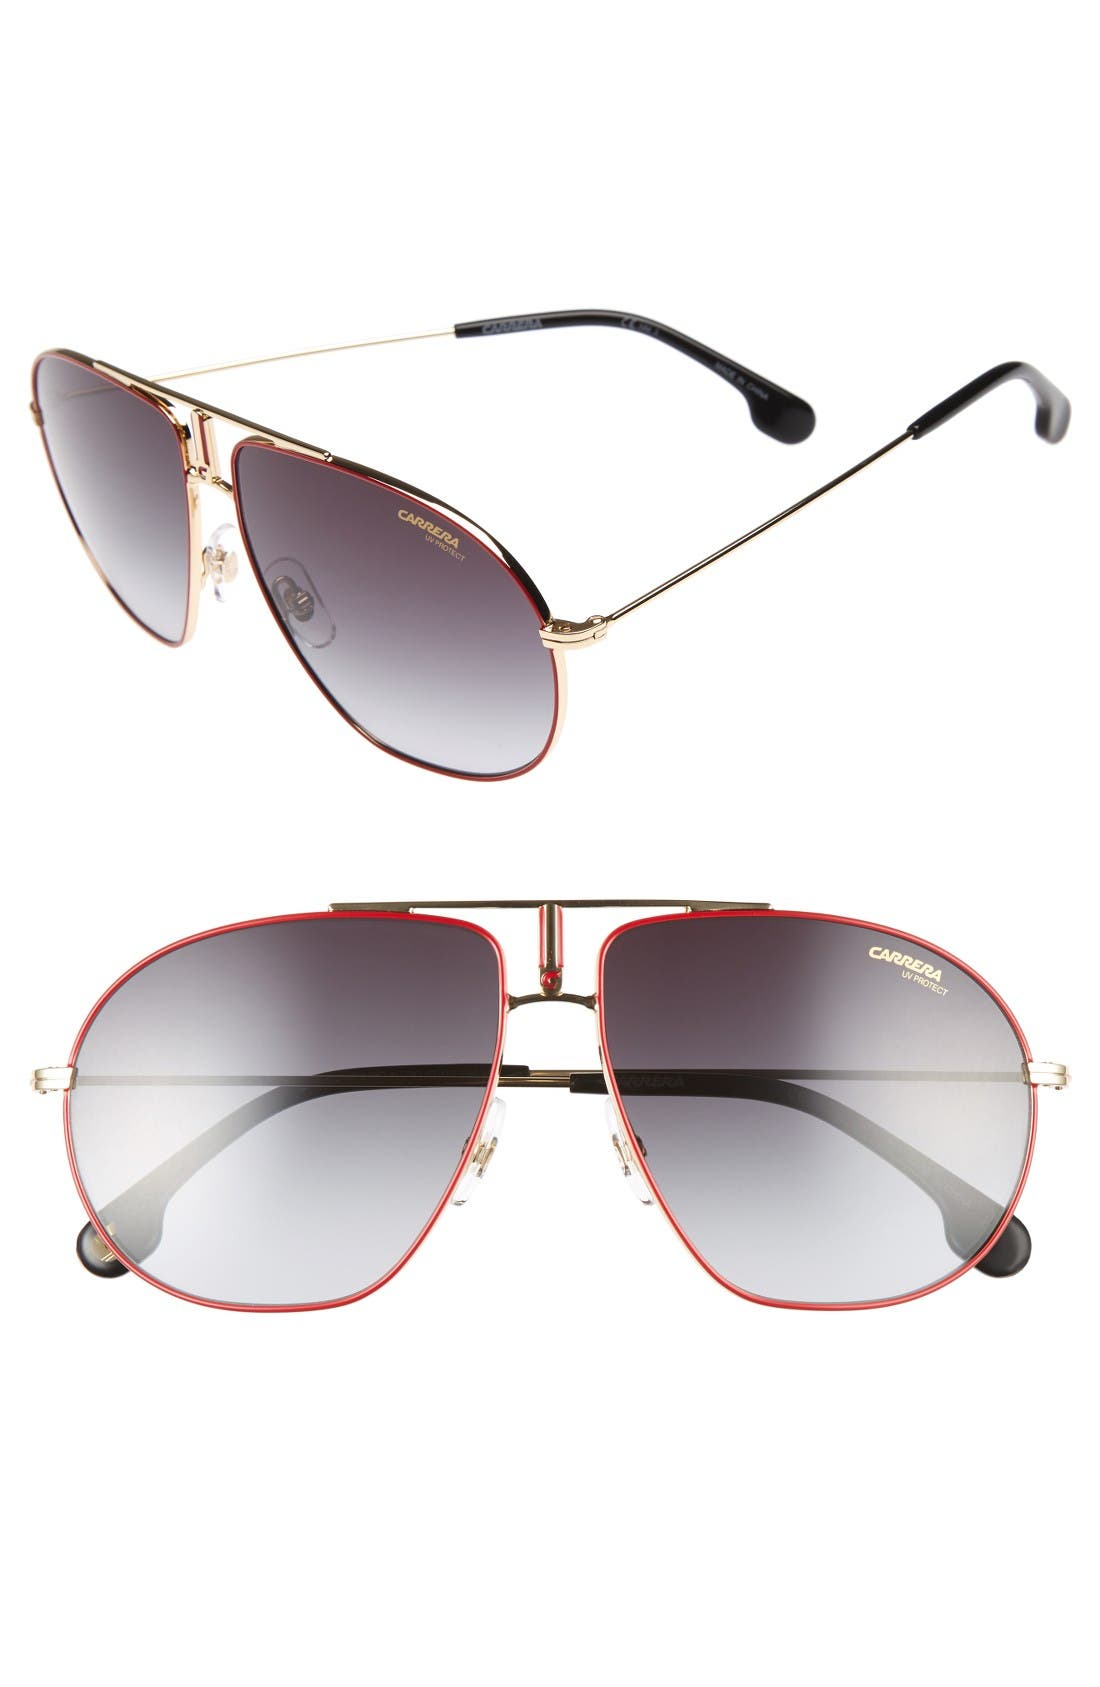 Carrera Bound 62mm Sunglasses,                             Main thumbnail 1, color,                             Red Gold